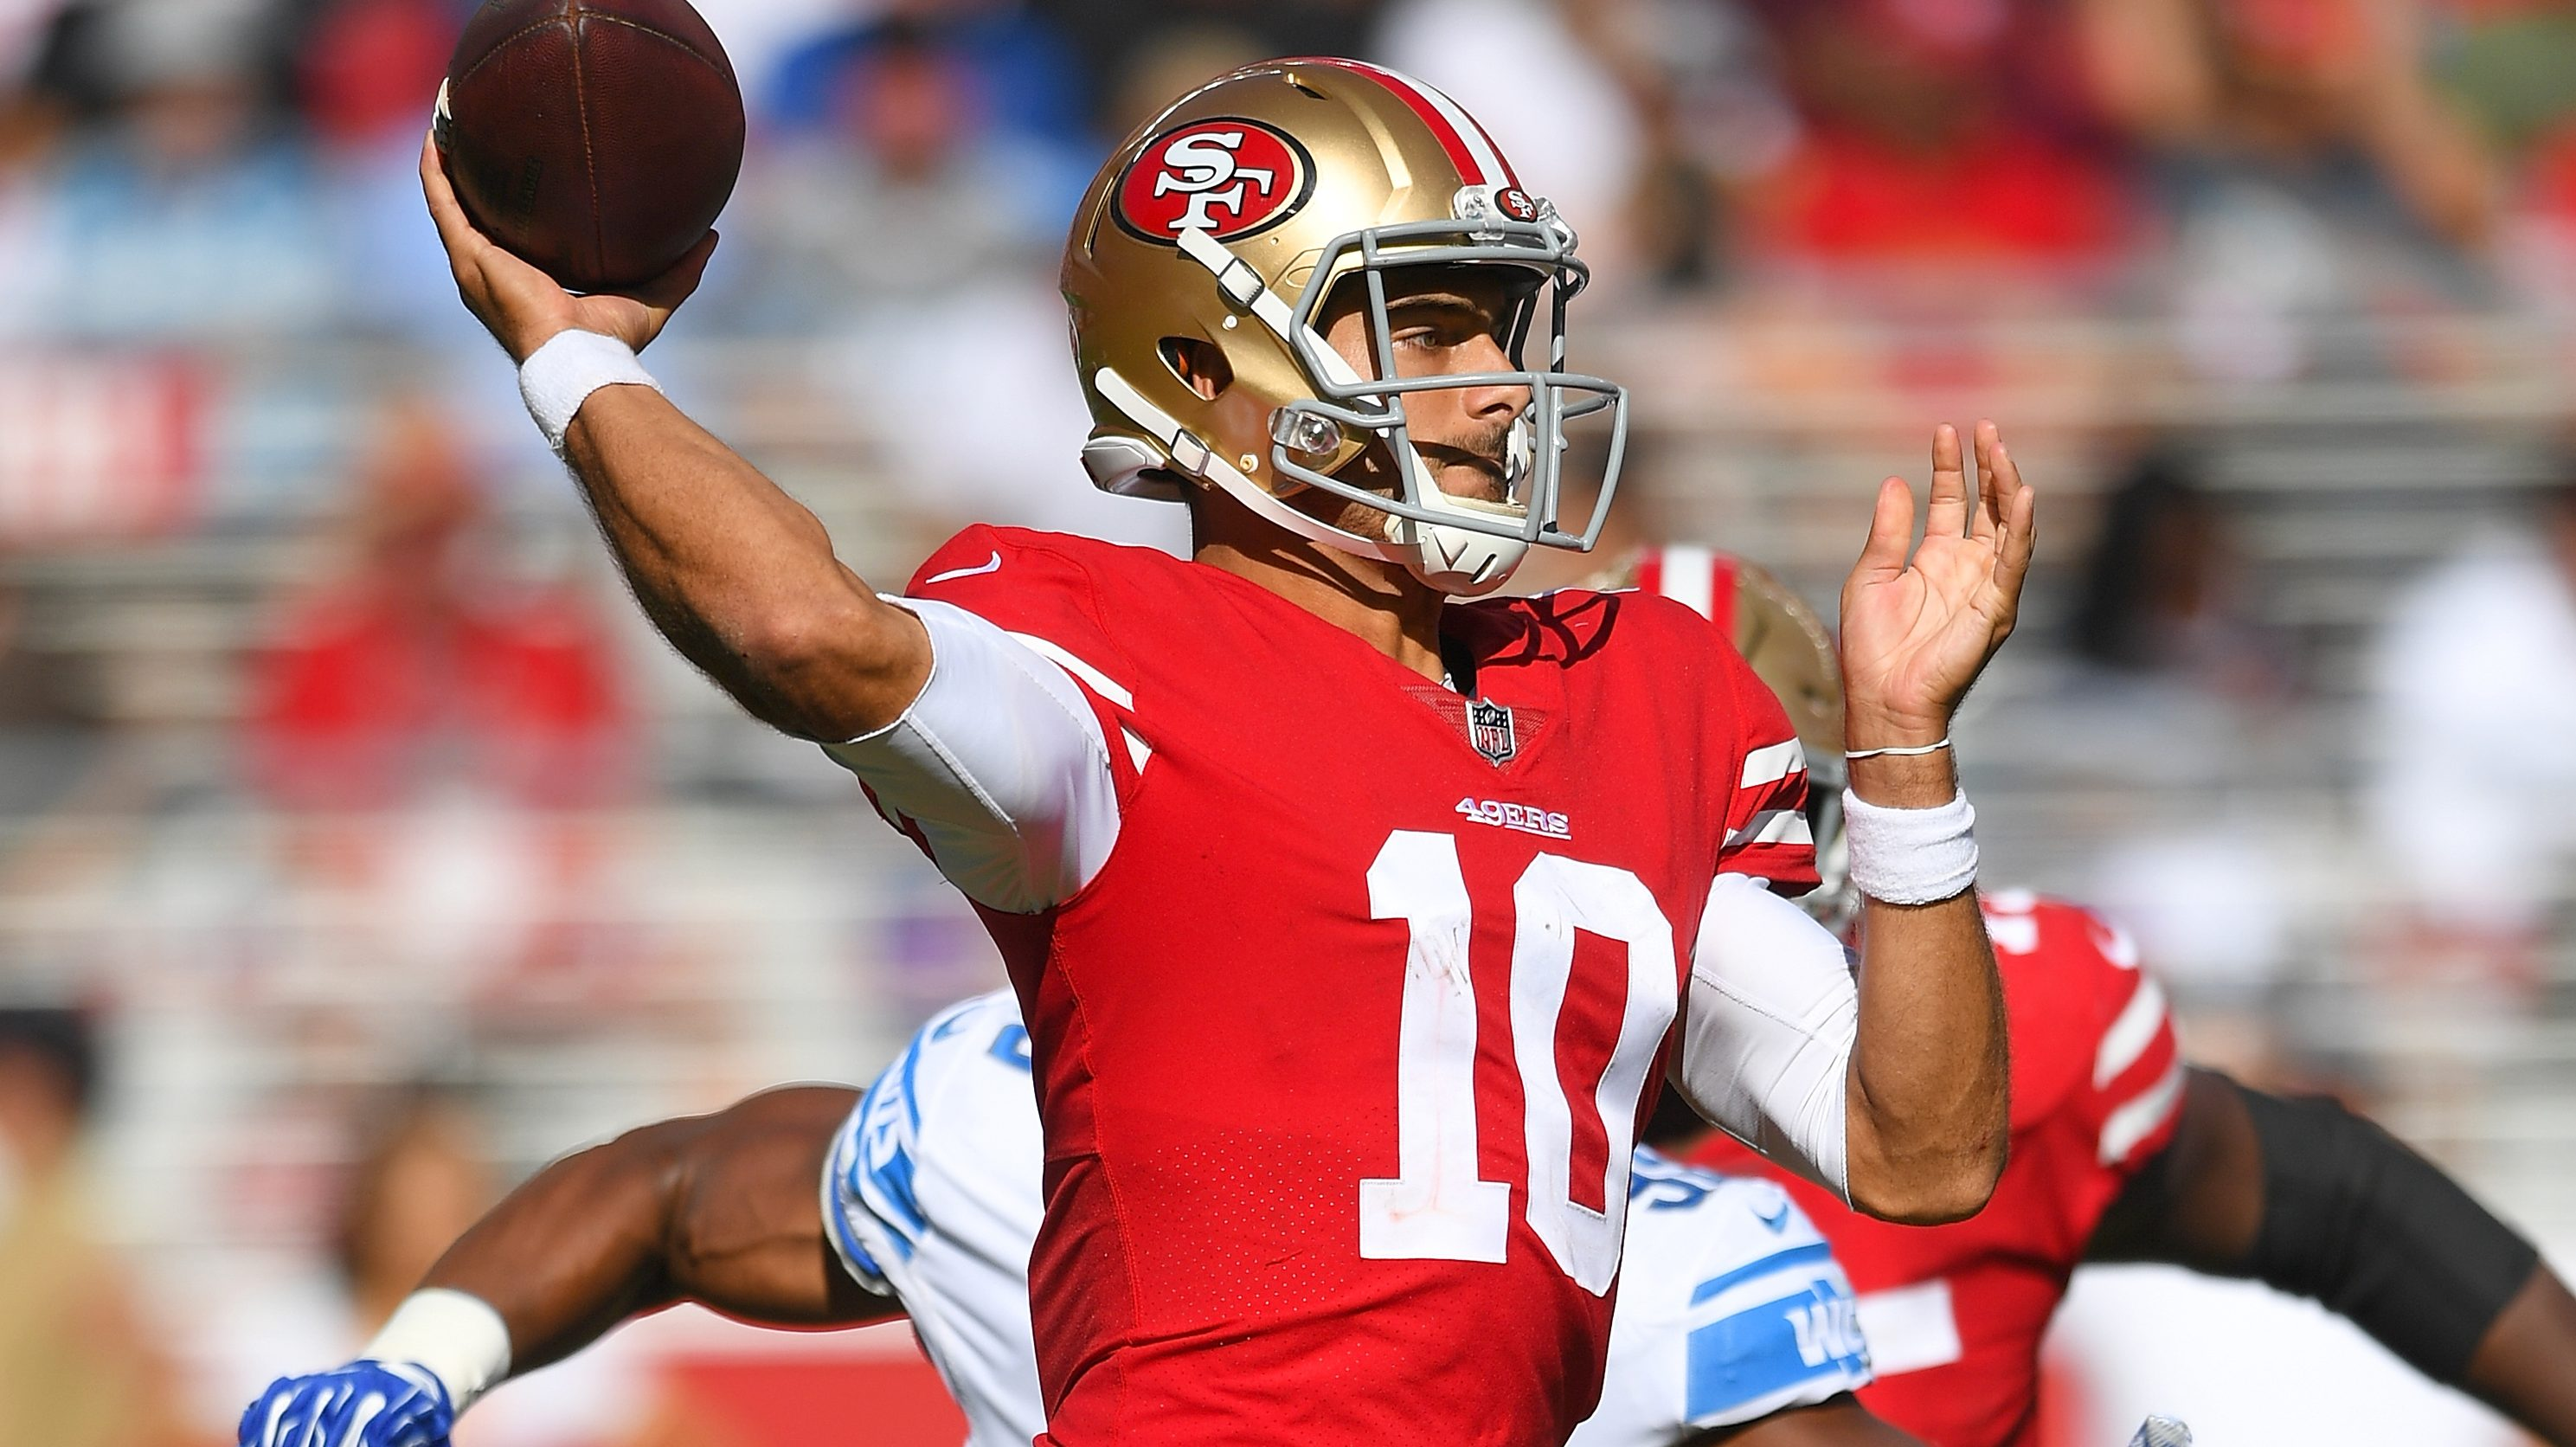 49ers vs Bucs Live Stream